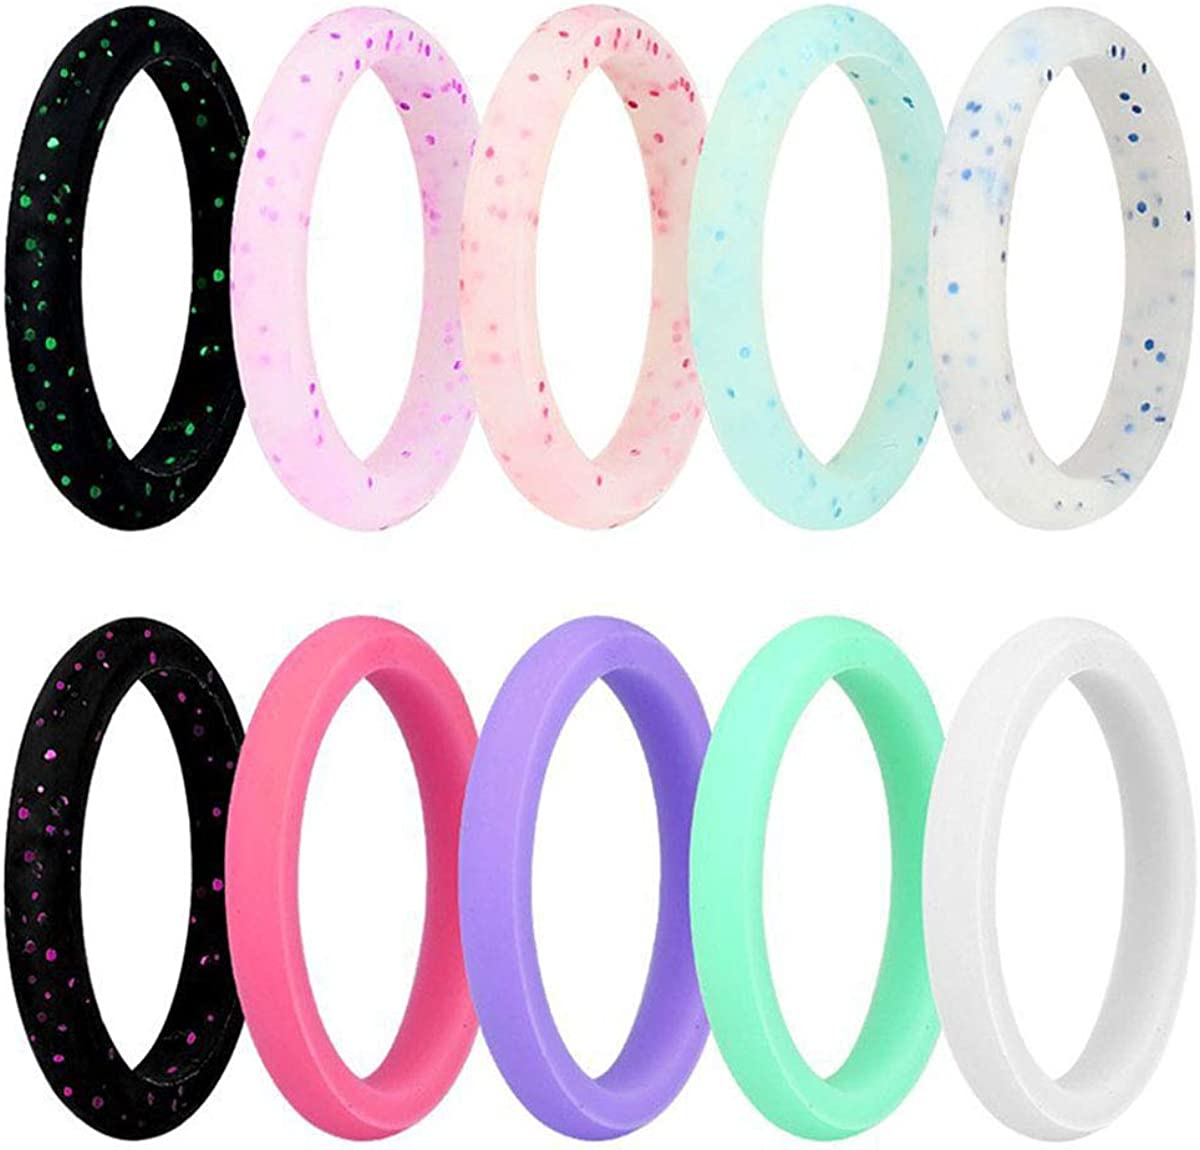 Kebaner 10 Pack / 7 Pack 2.7MM Wide Silicone Wedding Ring Premium Medical Grade Stackable Band for Women